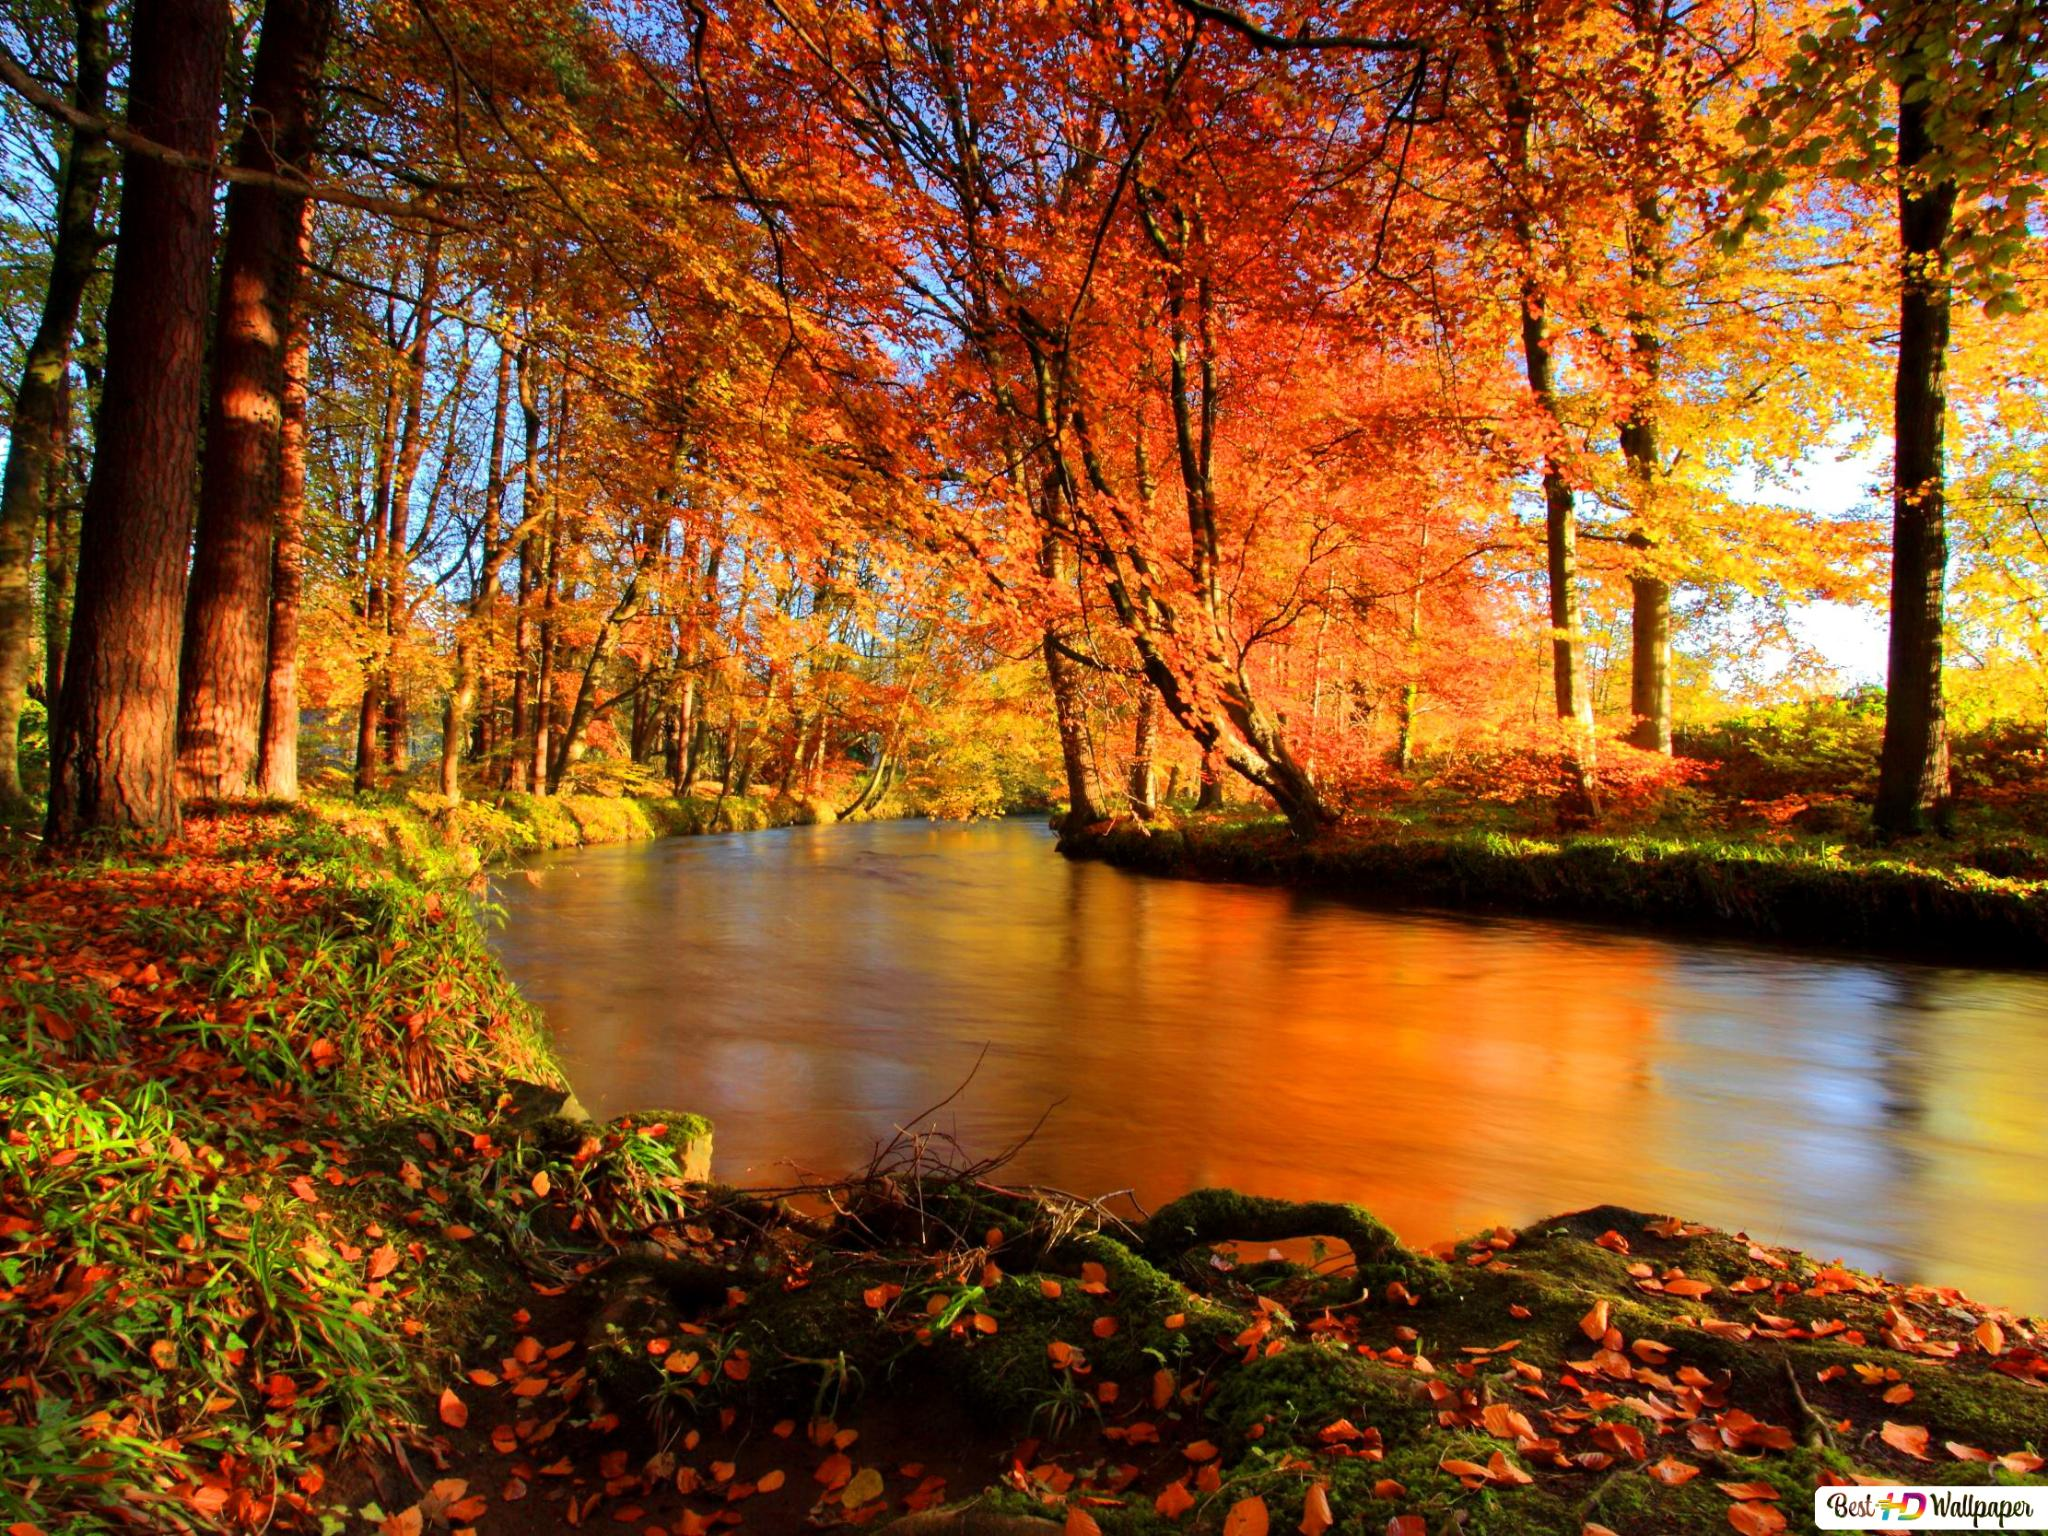 The River Flows In The Autumn Forest Hd Wallpaper Download